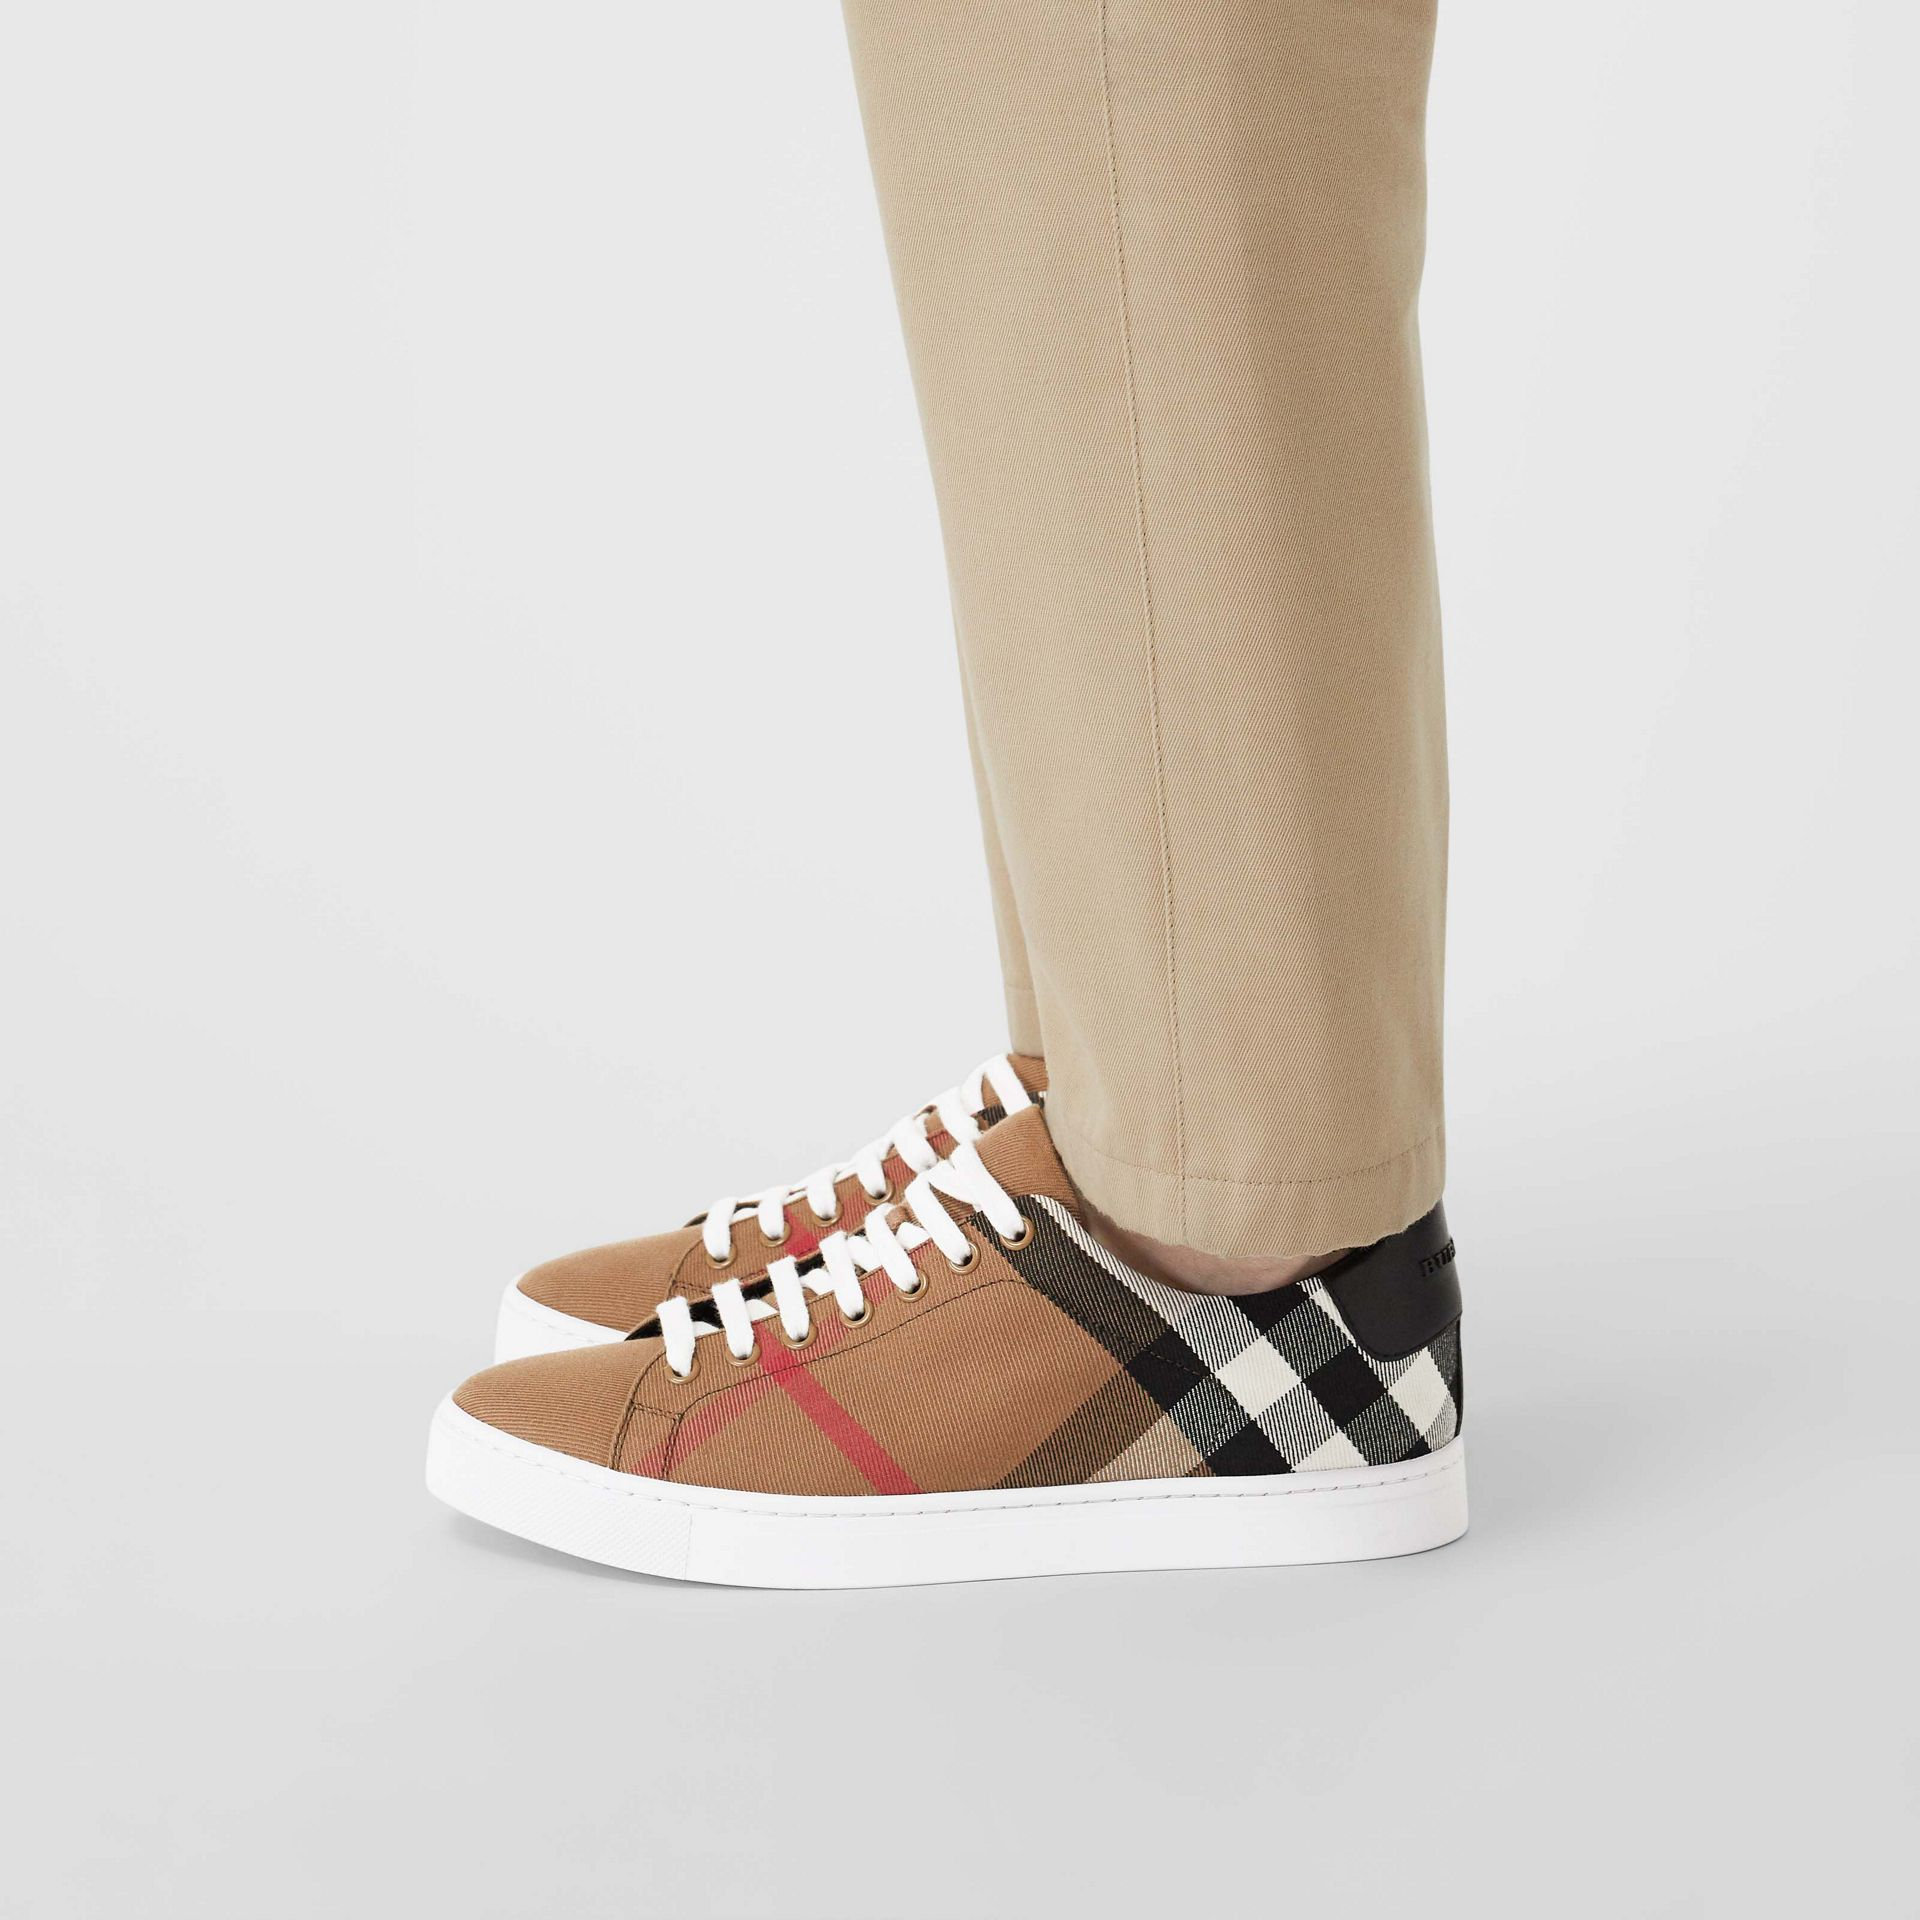 Sneakers en coton House check et cuir (Check/noir) - Homme | Burberry Canada - photo de la galerie 2